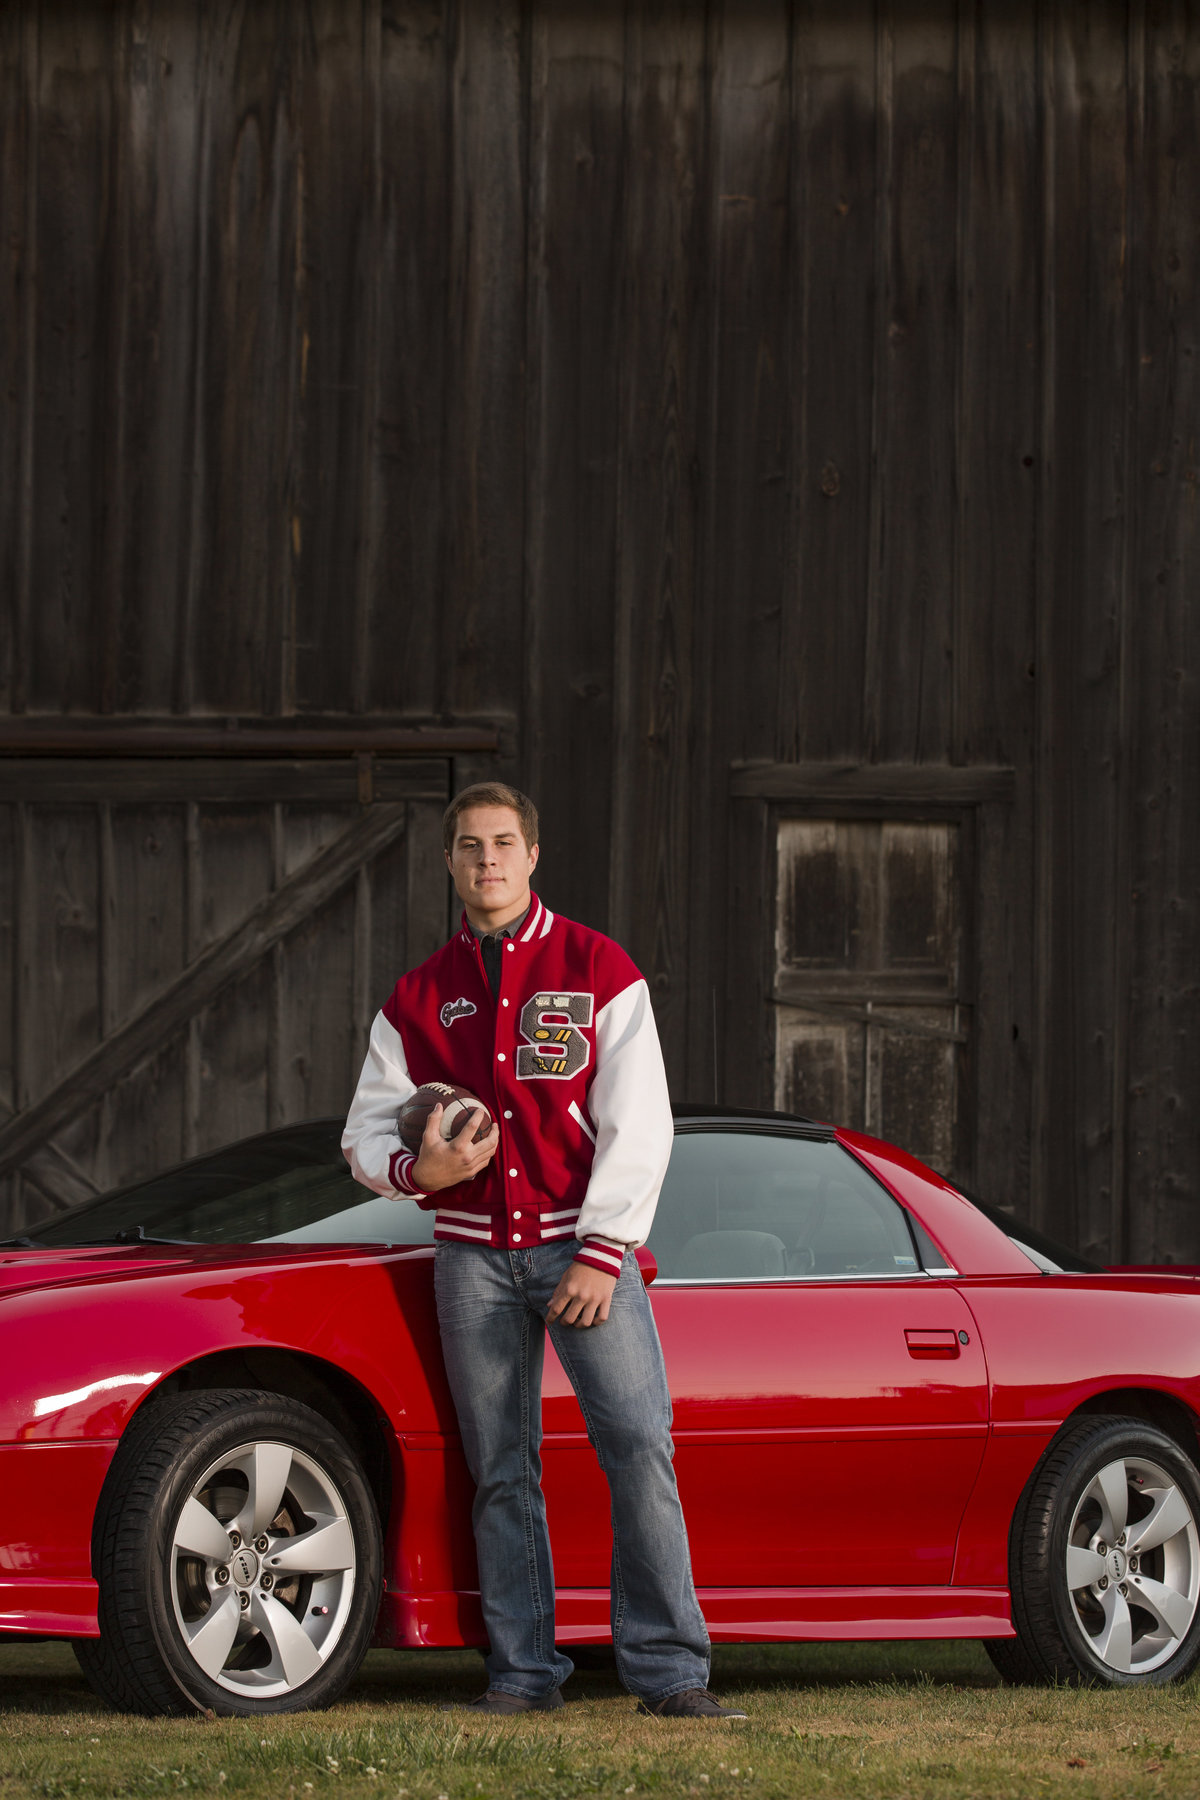 bellingham photographers high school football player senior portrait with car